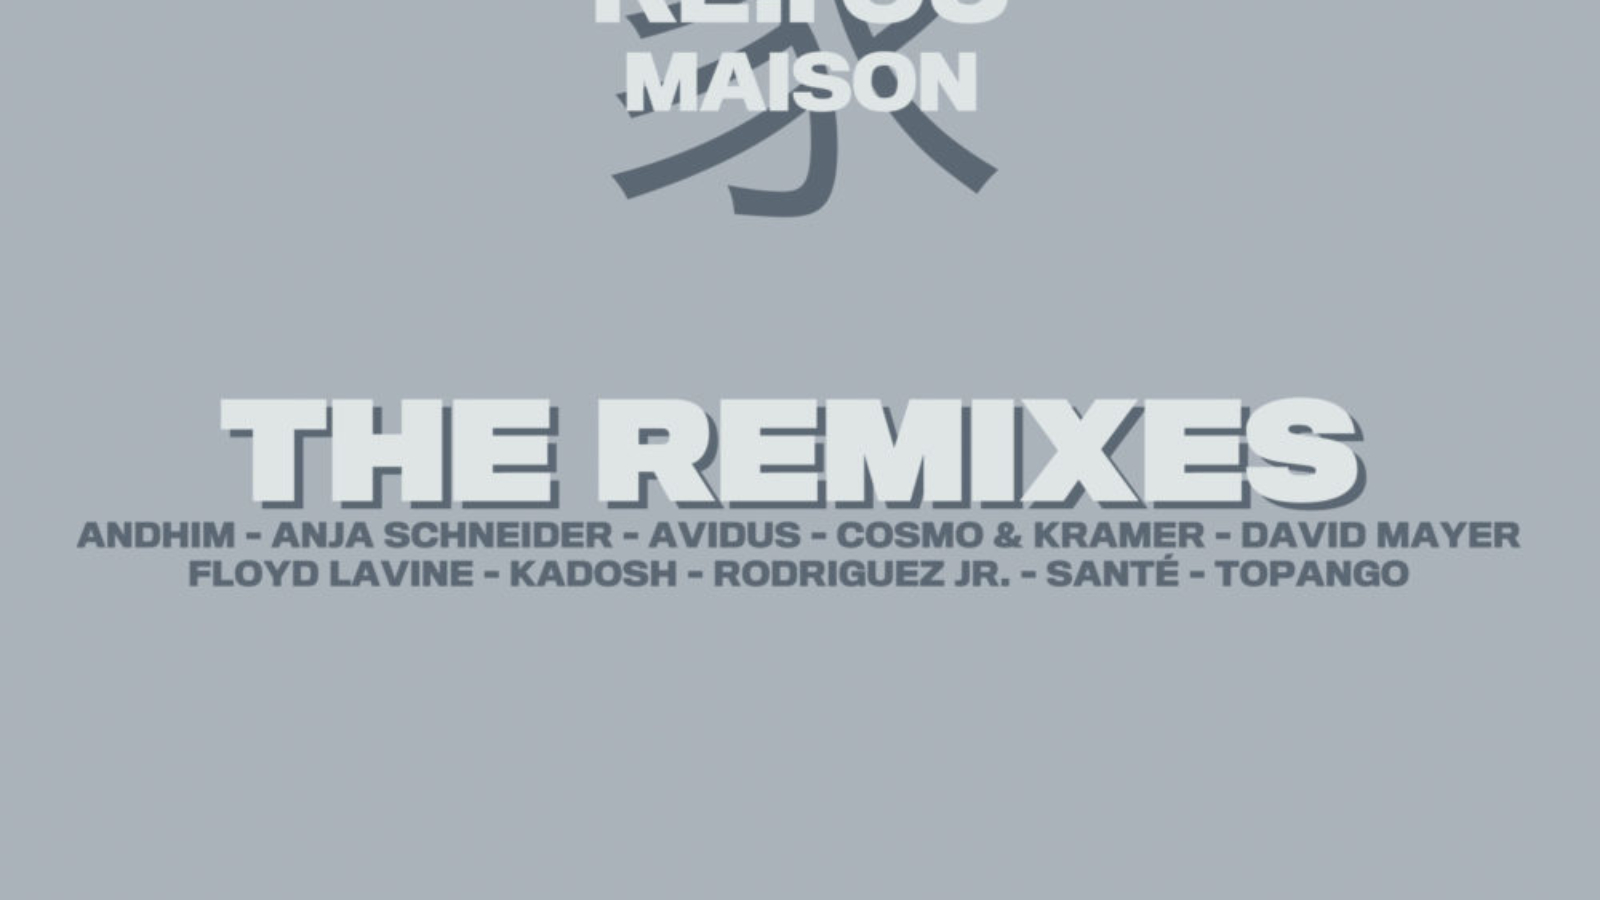 connected061 ARTWORK Re.You - Maison - The Remixes - connected